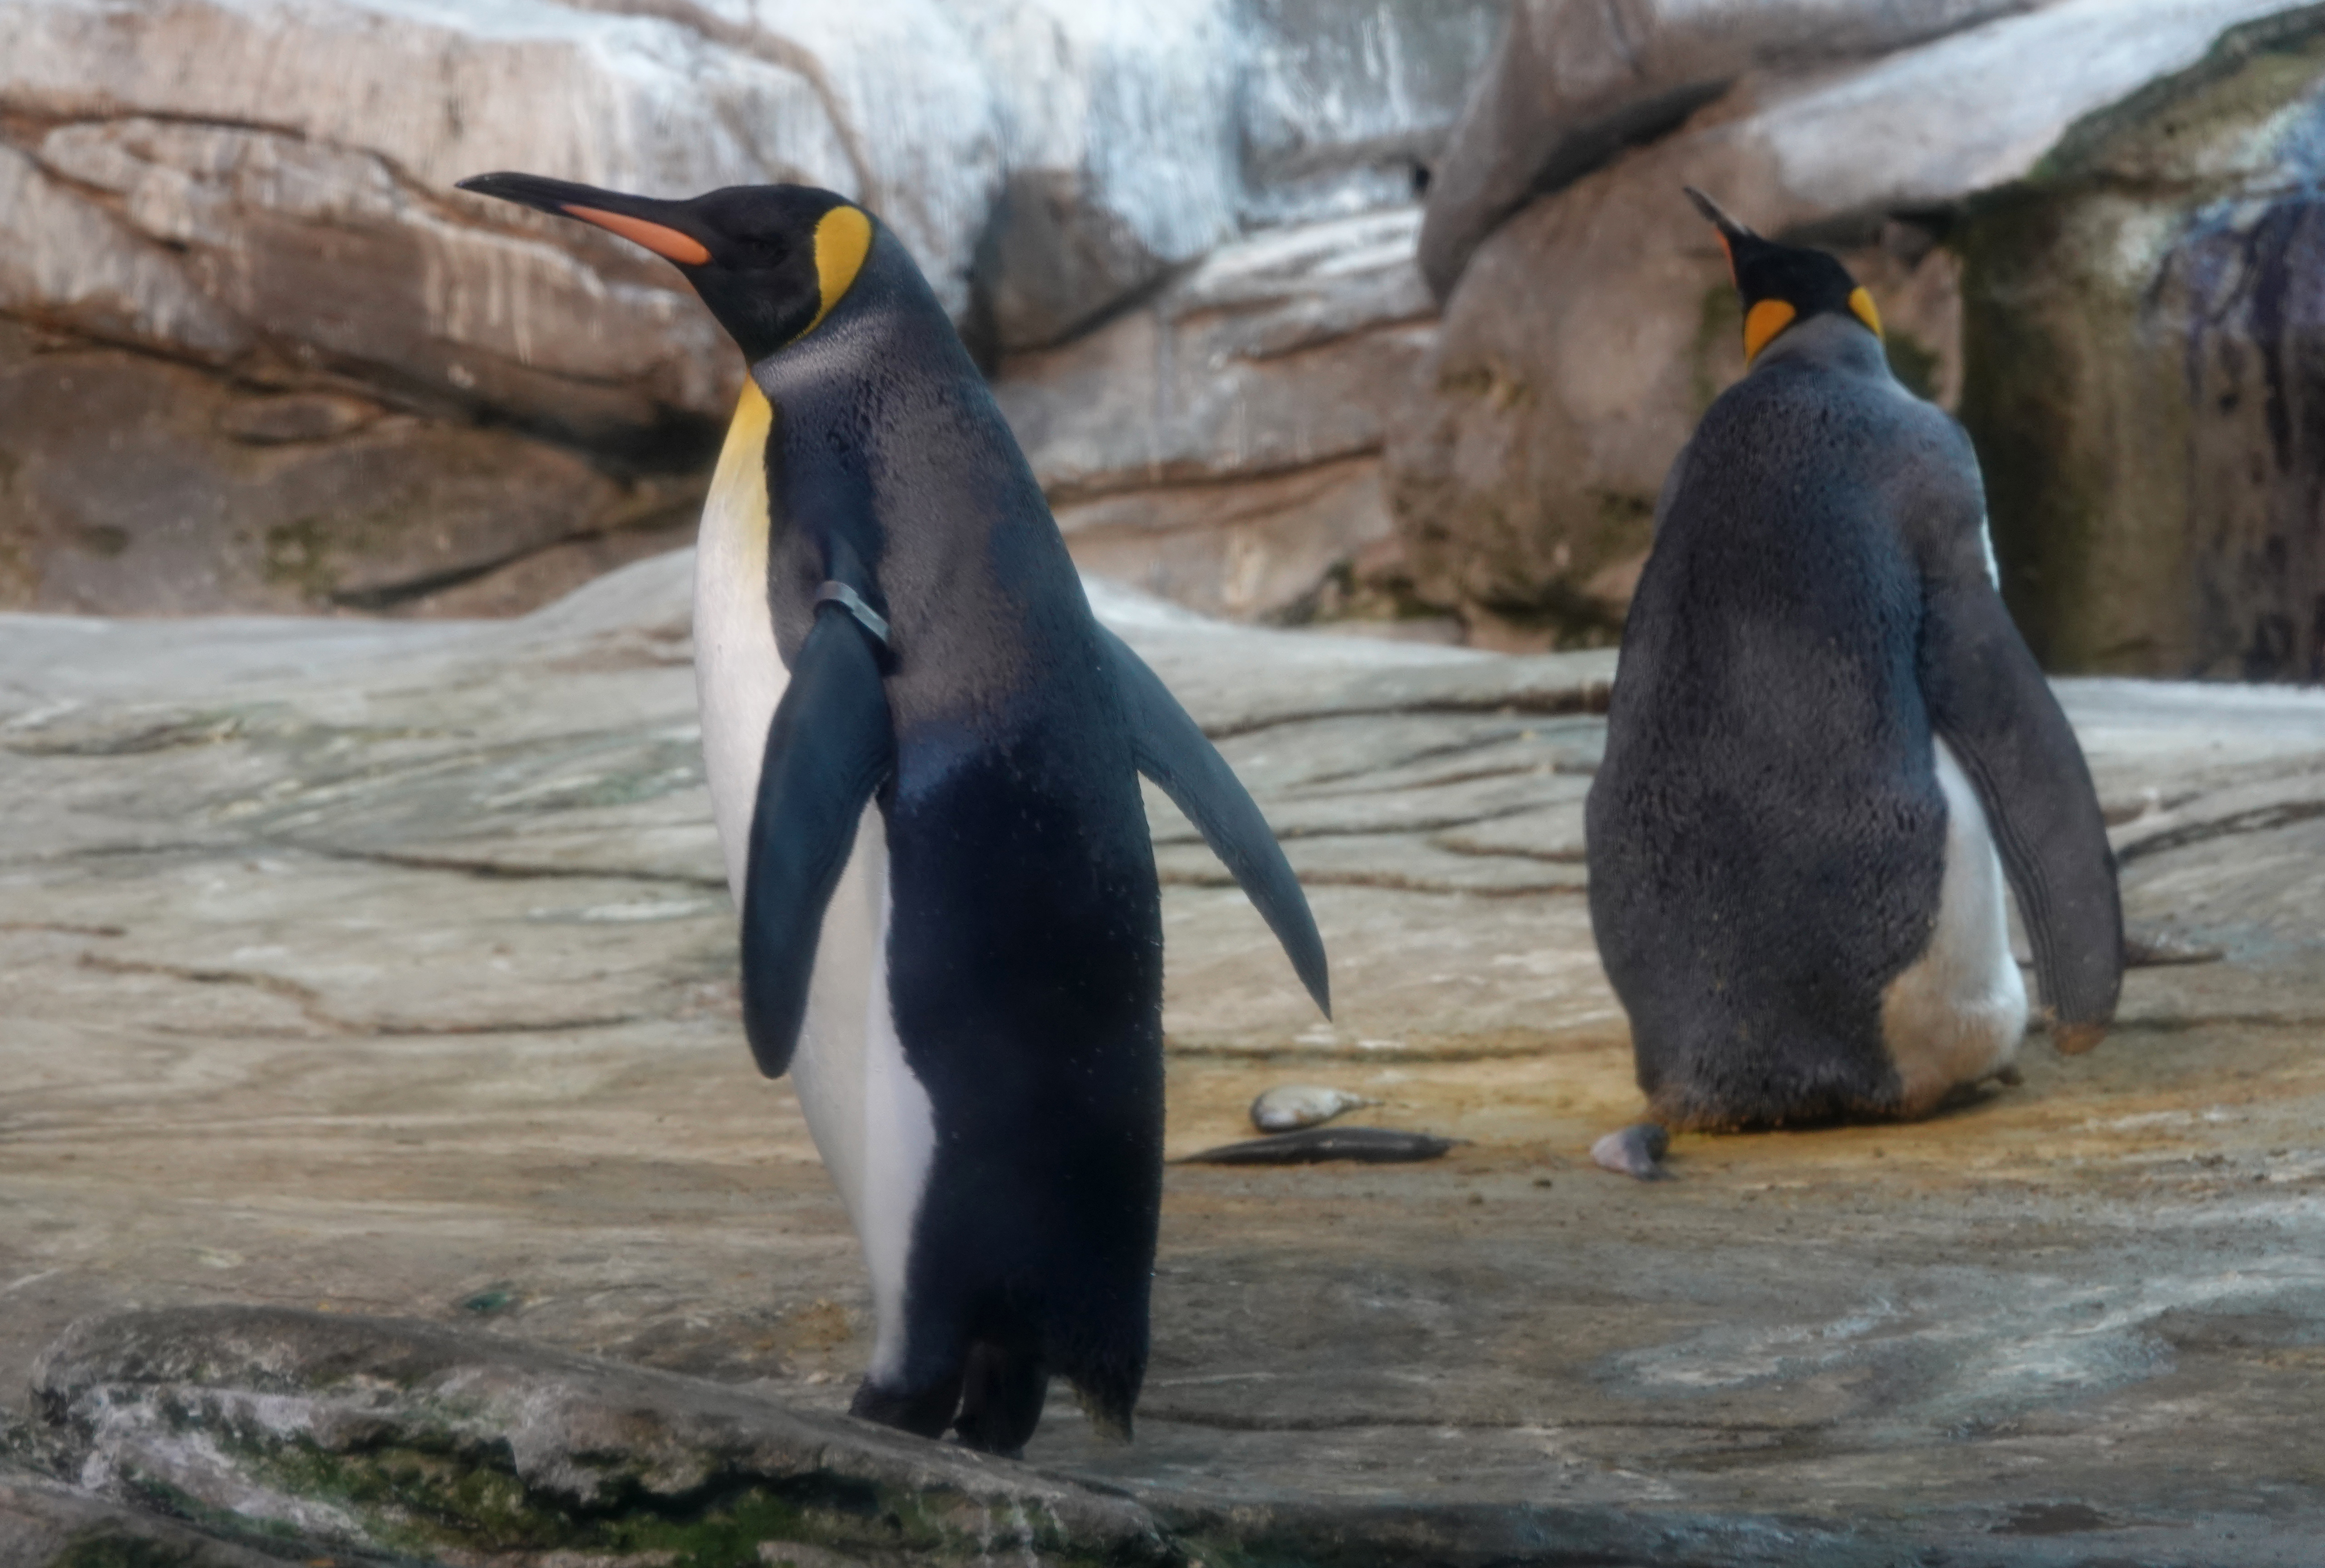 Six Zoos and Aquariums Offering Live Videos of Animals for Free During New Coronavirus Outbreak